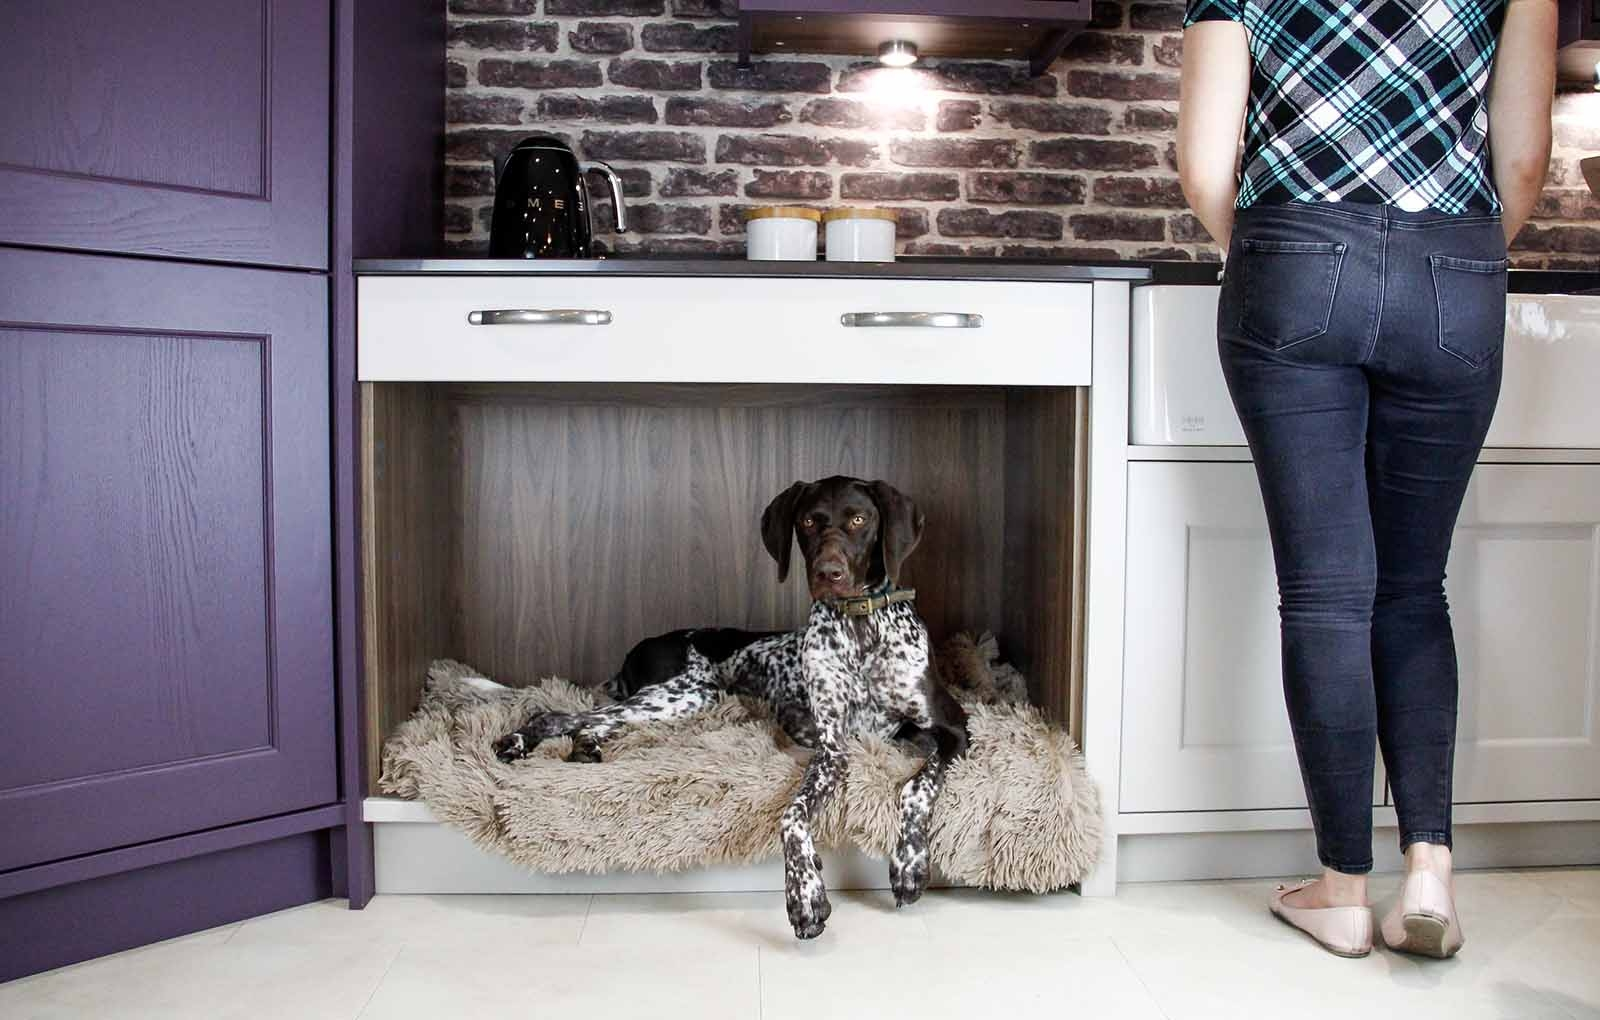 How to Make Pet Friendly Kitchens